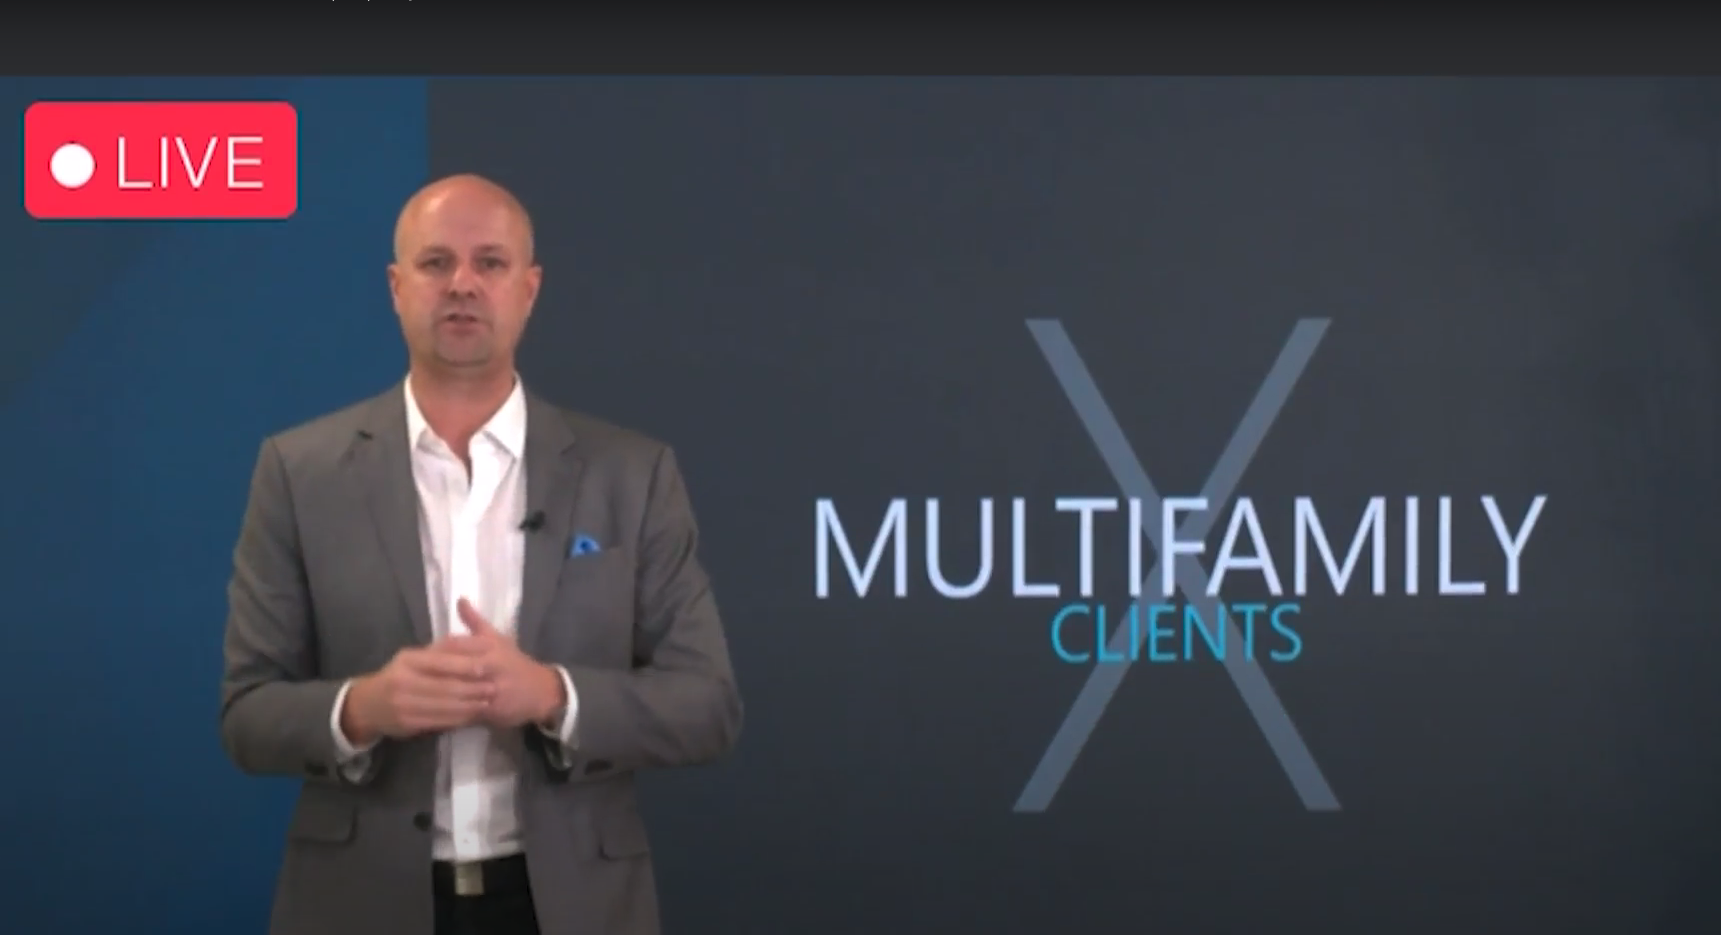 Multifamily Scale & Grow Event Launched to help Multifamily Vendors